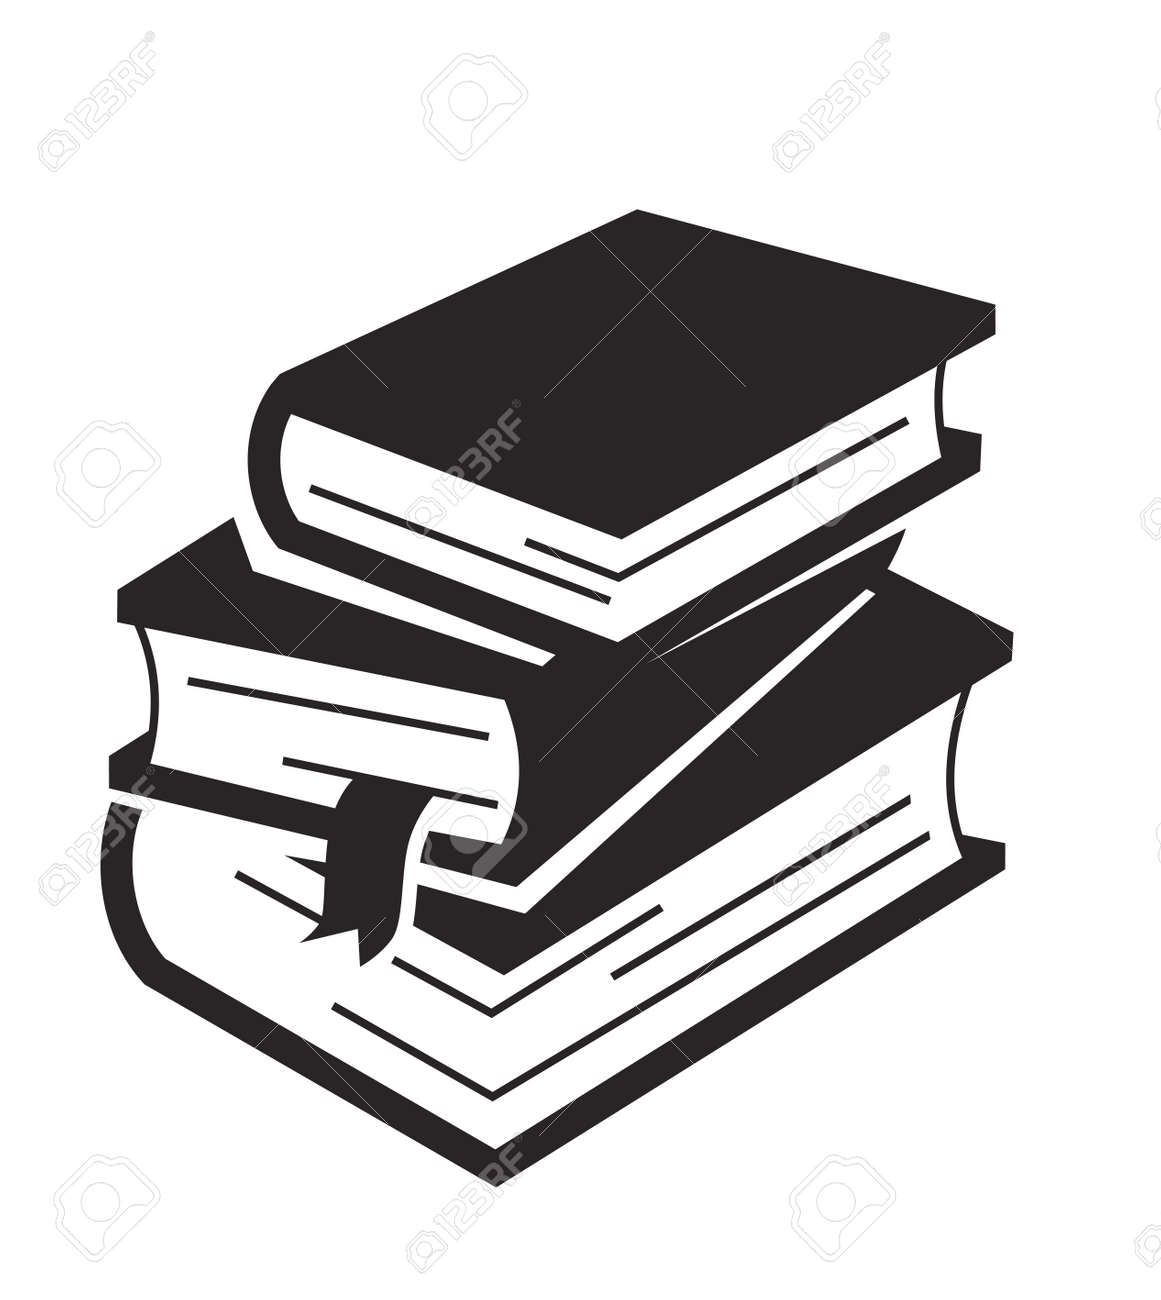 vector black Book icon on white background - 50554976